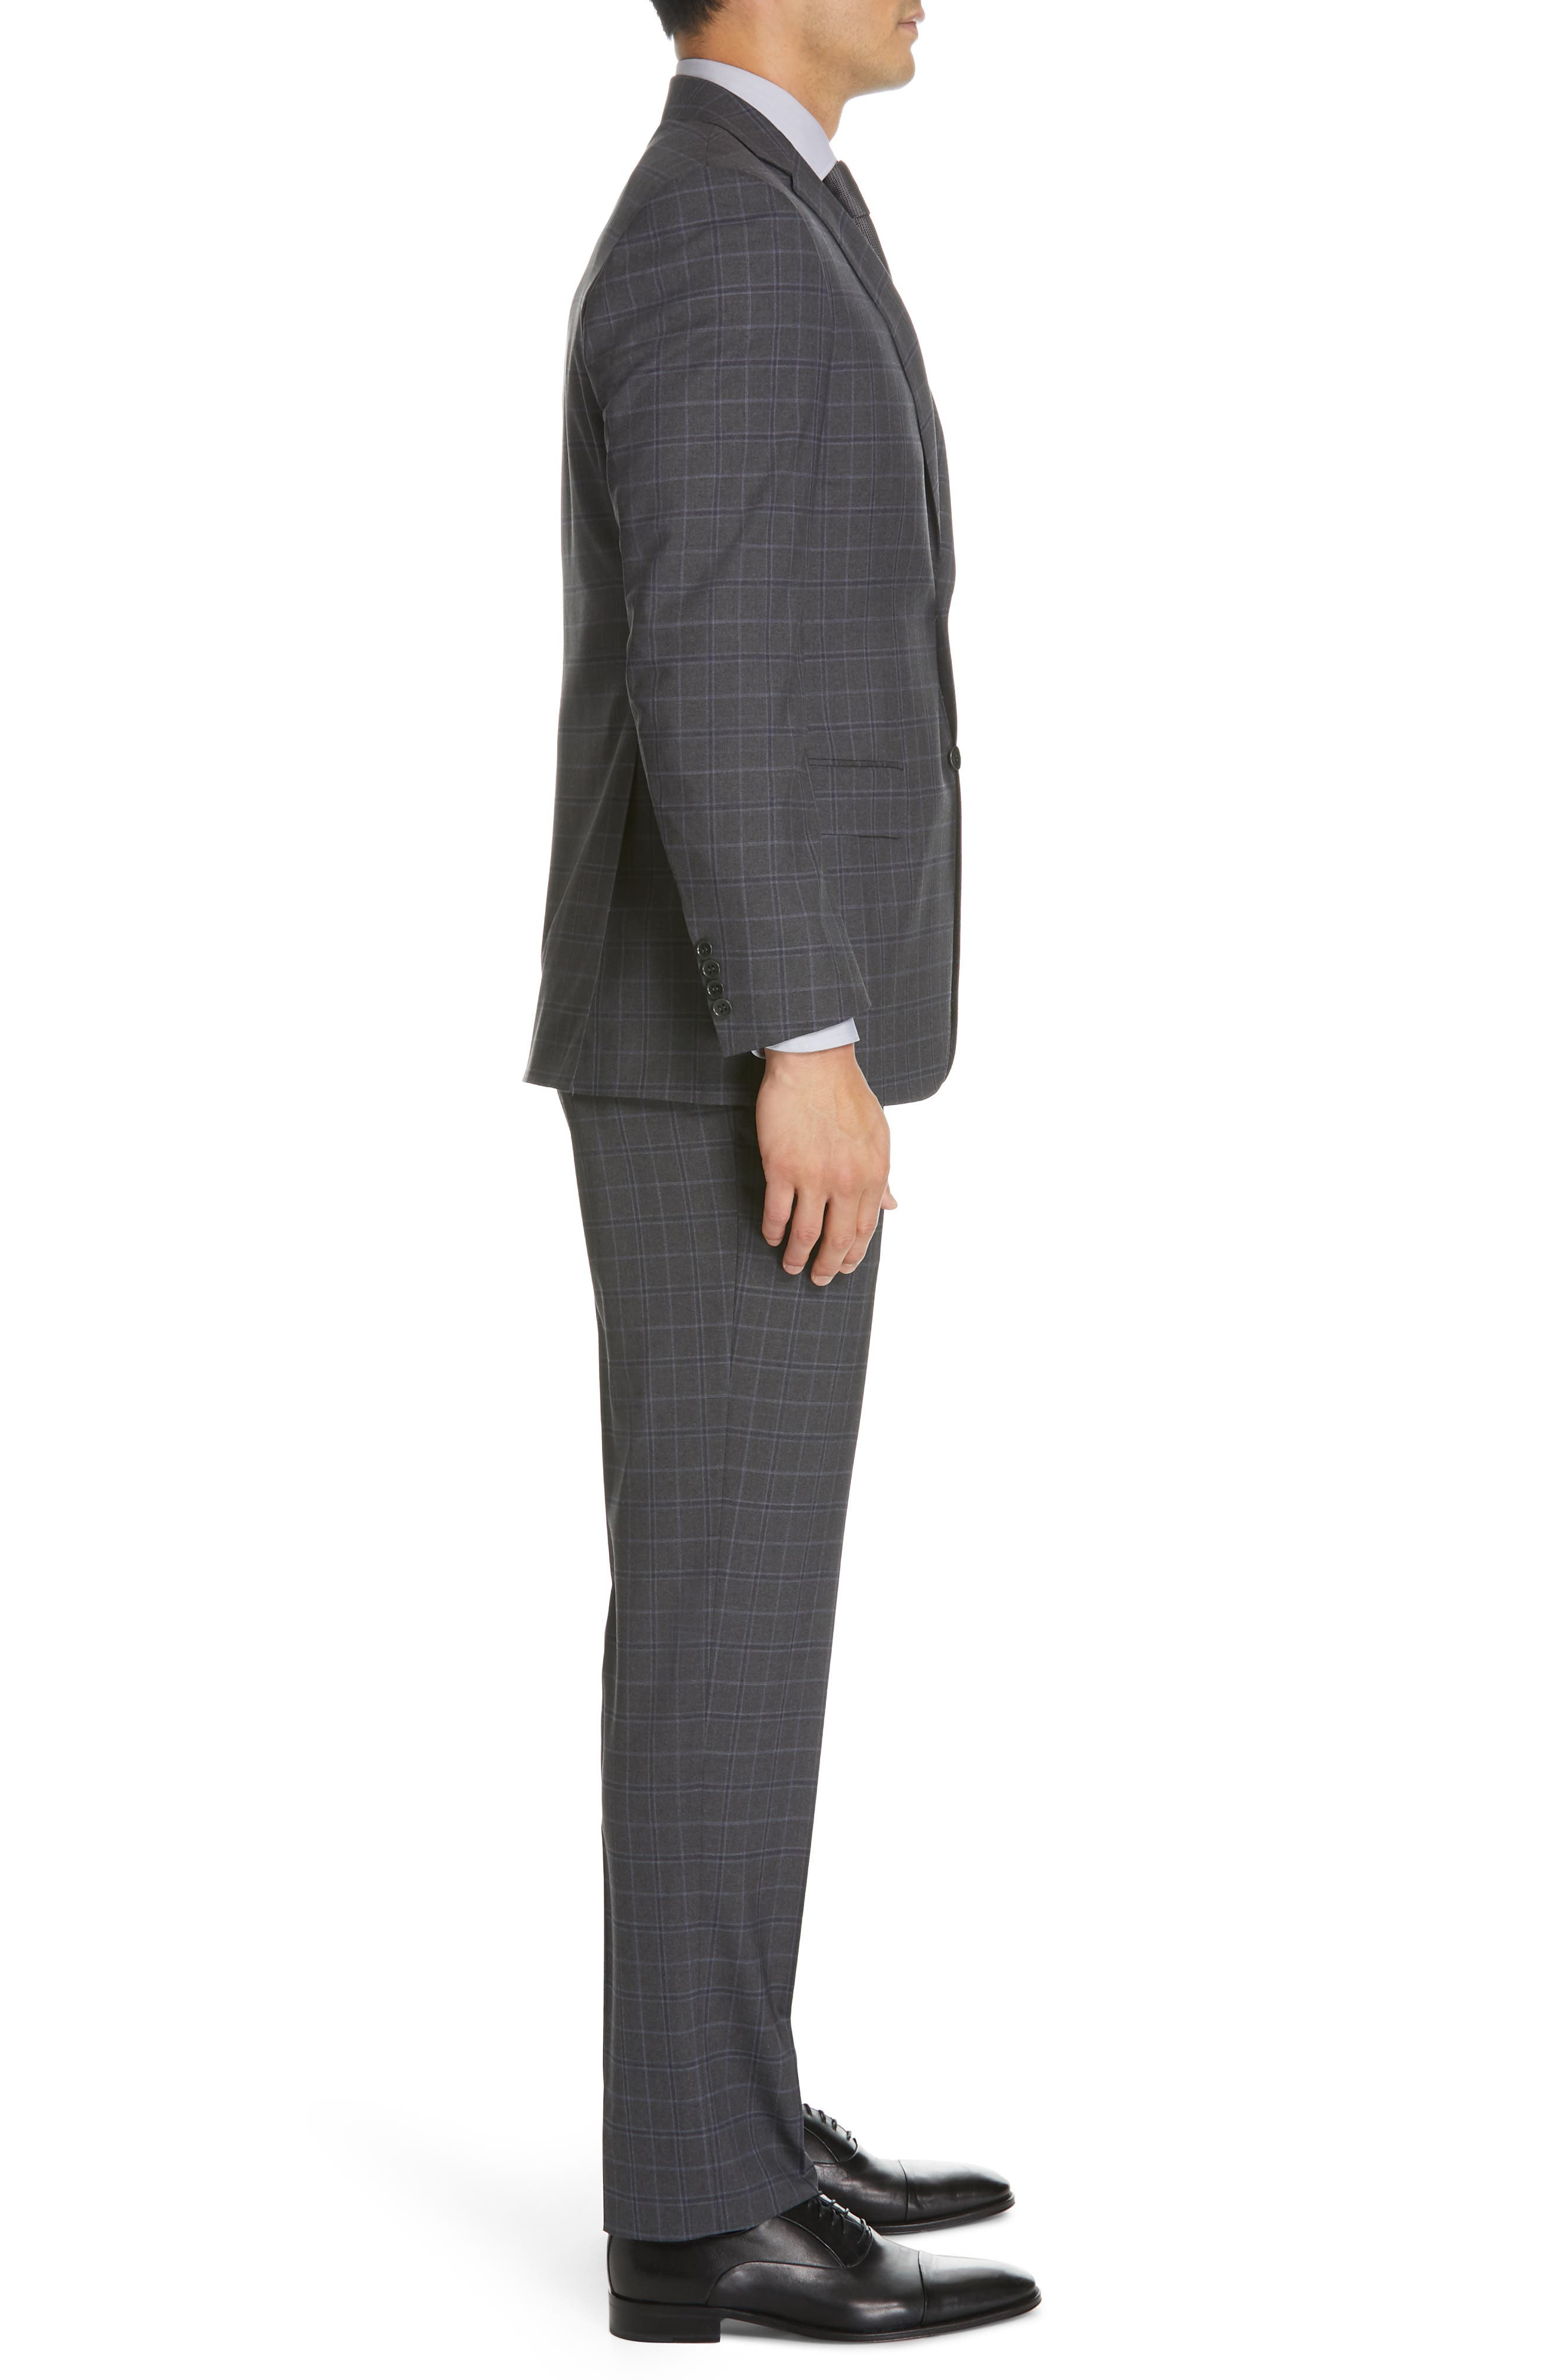 CANALI, Sienna Classic Fit Plaid Wool Suit, Alternate thumbnail 3, color, CHARCOAL